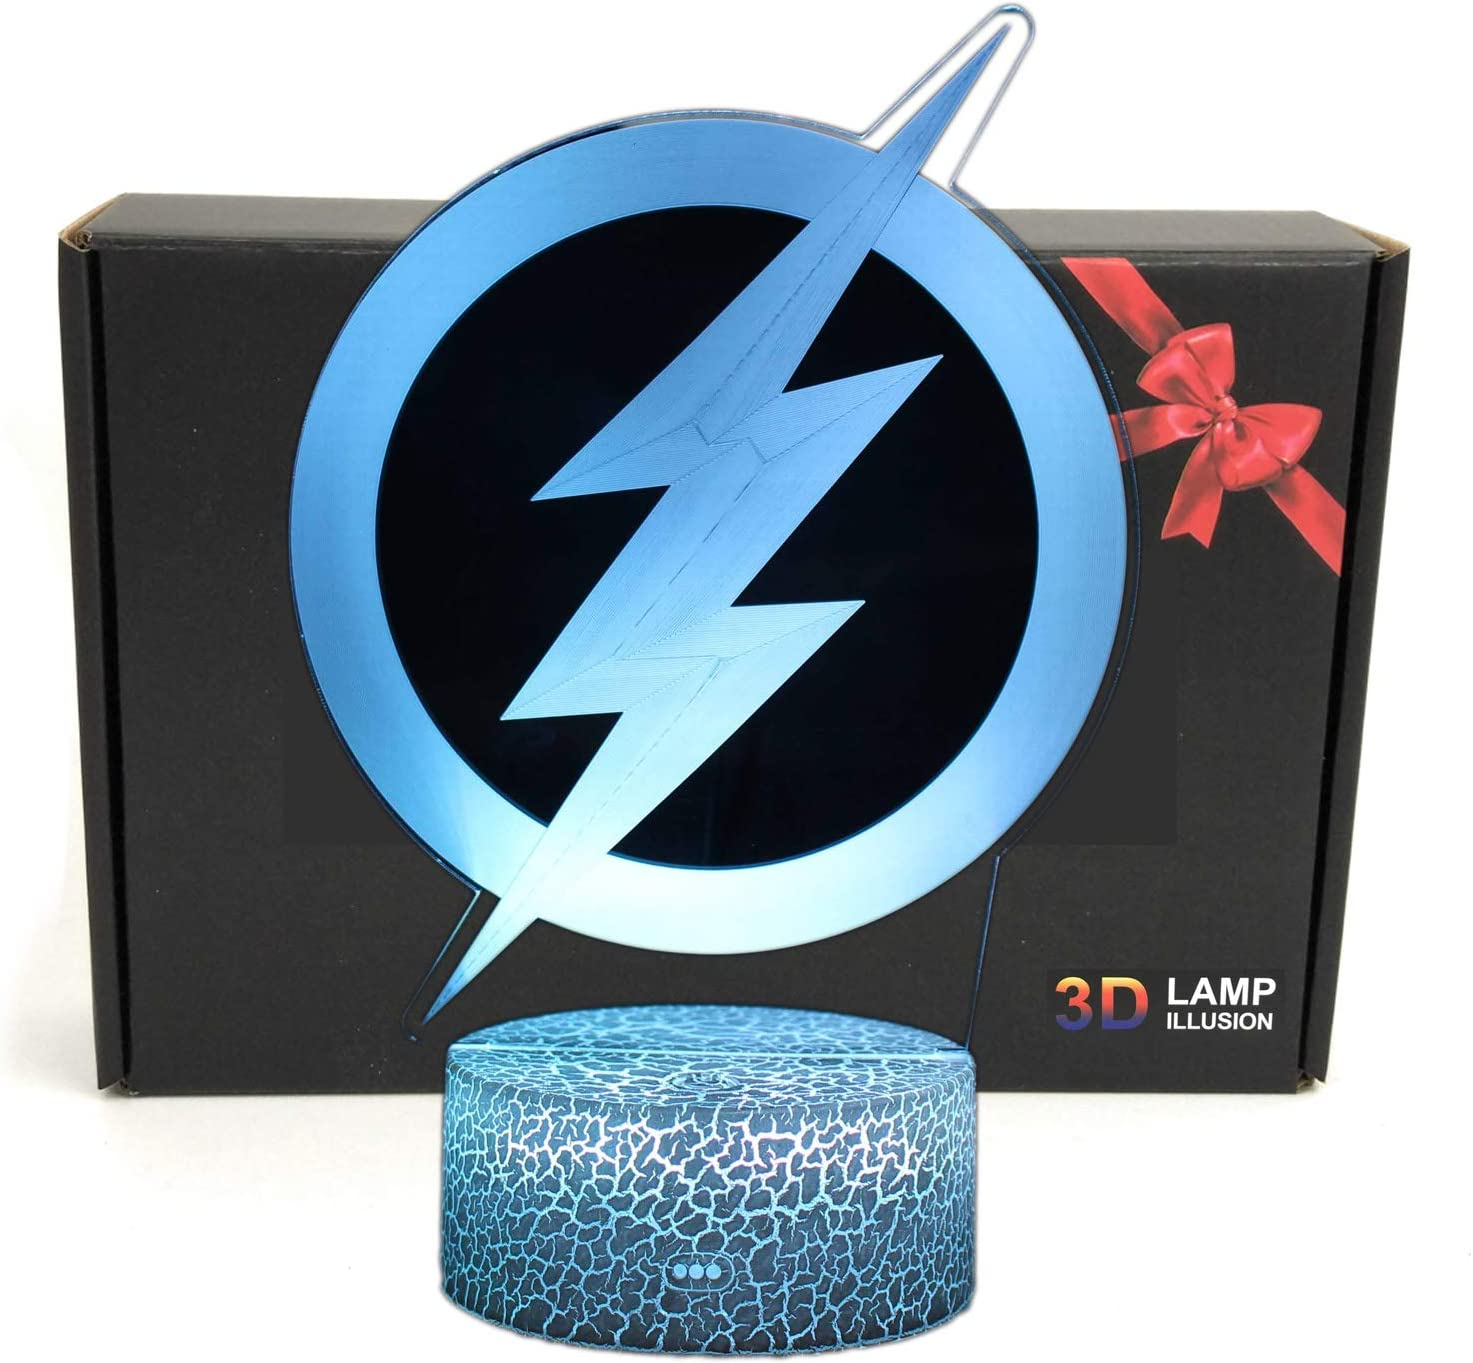 DGLighting Superhero Cartoon Shape 3D Illusion LED Desk Lamp Night Light with Lighted ABS Base and USB Cable,7 Colors Change,Smart Touch Button Control,for Home Decor (The Flash Logo)